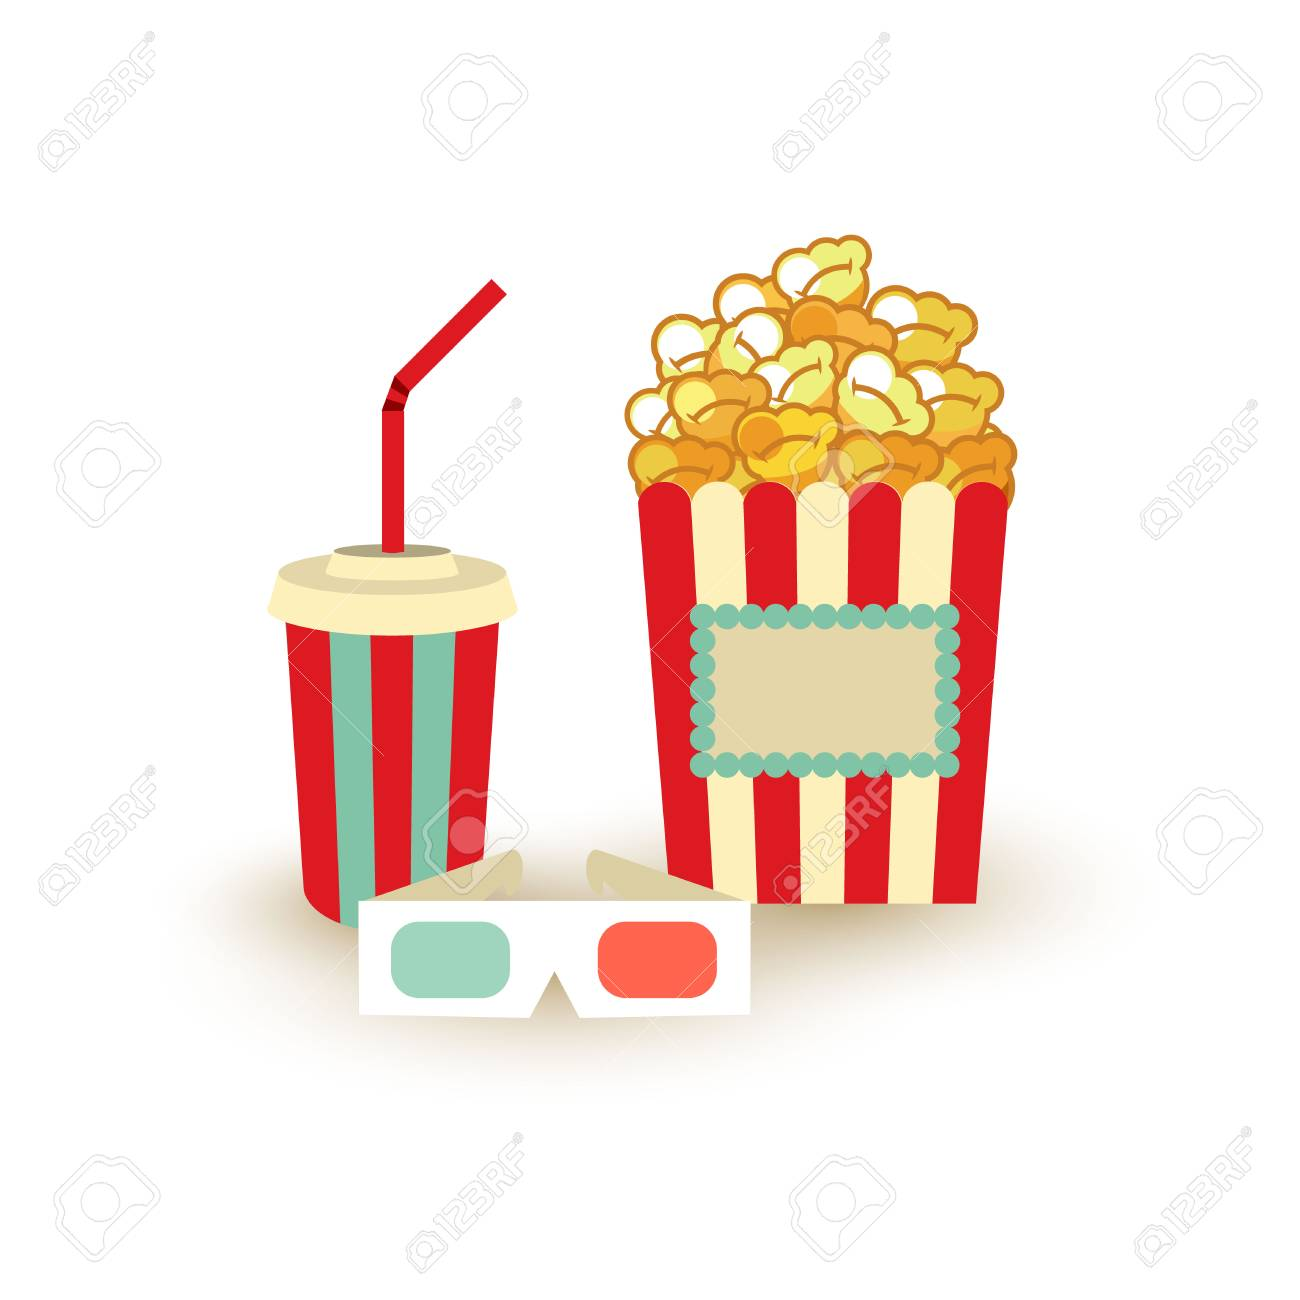 Movie Poster Template Popcorn Soda Takeaway 3d Cinema Stereo Royalty Free Cliparts Vectors And Stock Illustration Image 87213952